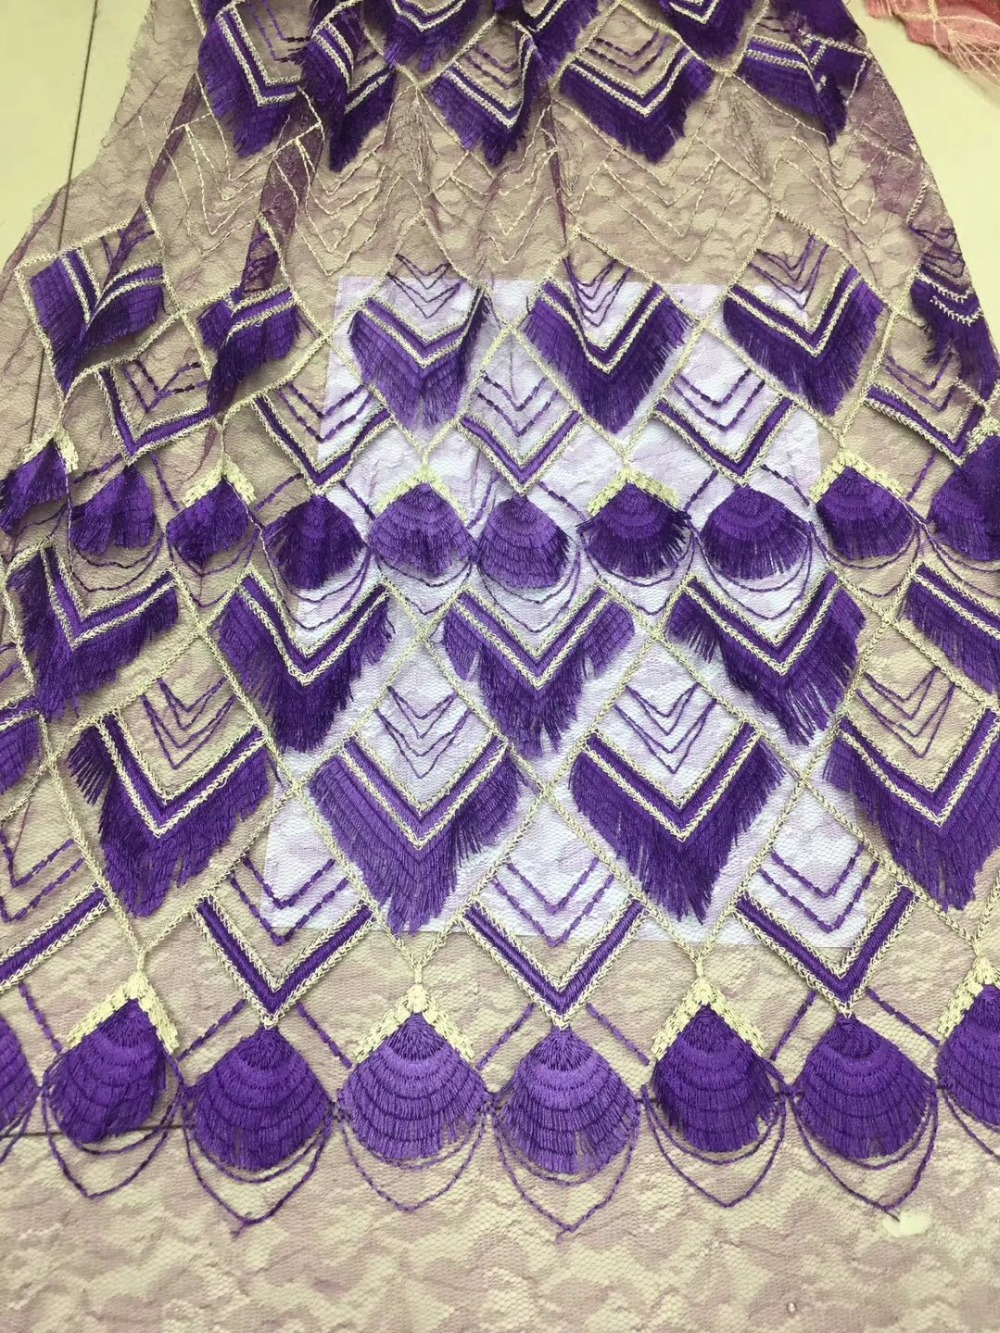 Nigerian Lace Fabrics 2018 African Lace Fabric Latest French Tulle Lace Embroidered Dubai African French Nigerian Lace Fabrics 2018 African Lace Fabric Latest French Tulle Lace Embroidered Dubai African French